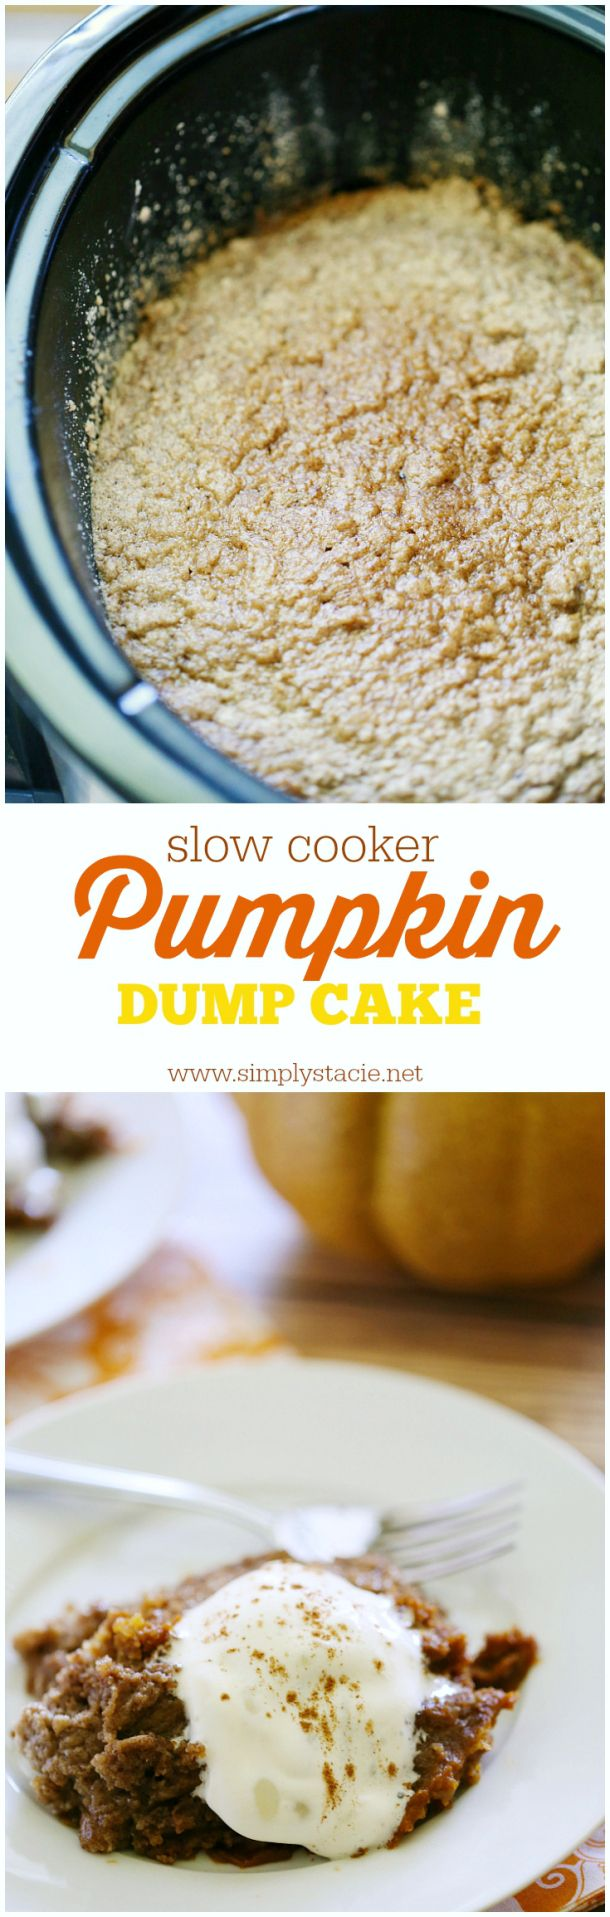 Slow Cooker Pumpkin Dump Cake - Slow Cooker Pumpkin Dump Cake - The name is a little weird, but don't let it scare you off. This Slow Cooker Pumpkin Dump Cake is an easy fall dessert with only a few ingredients!